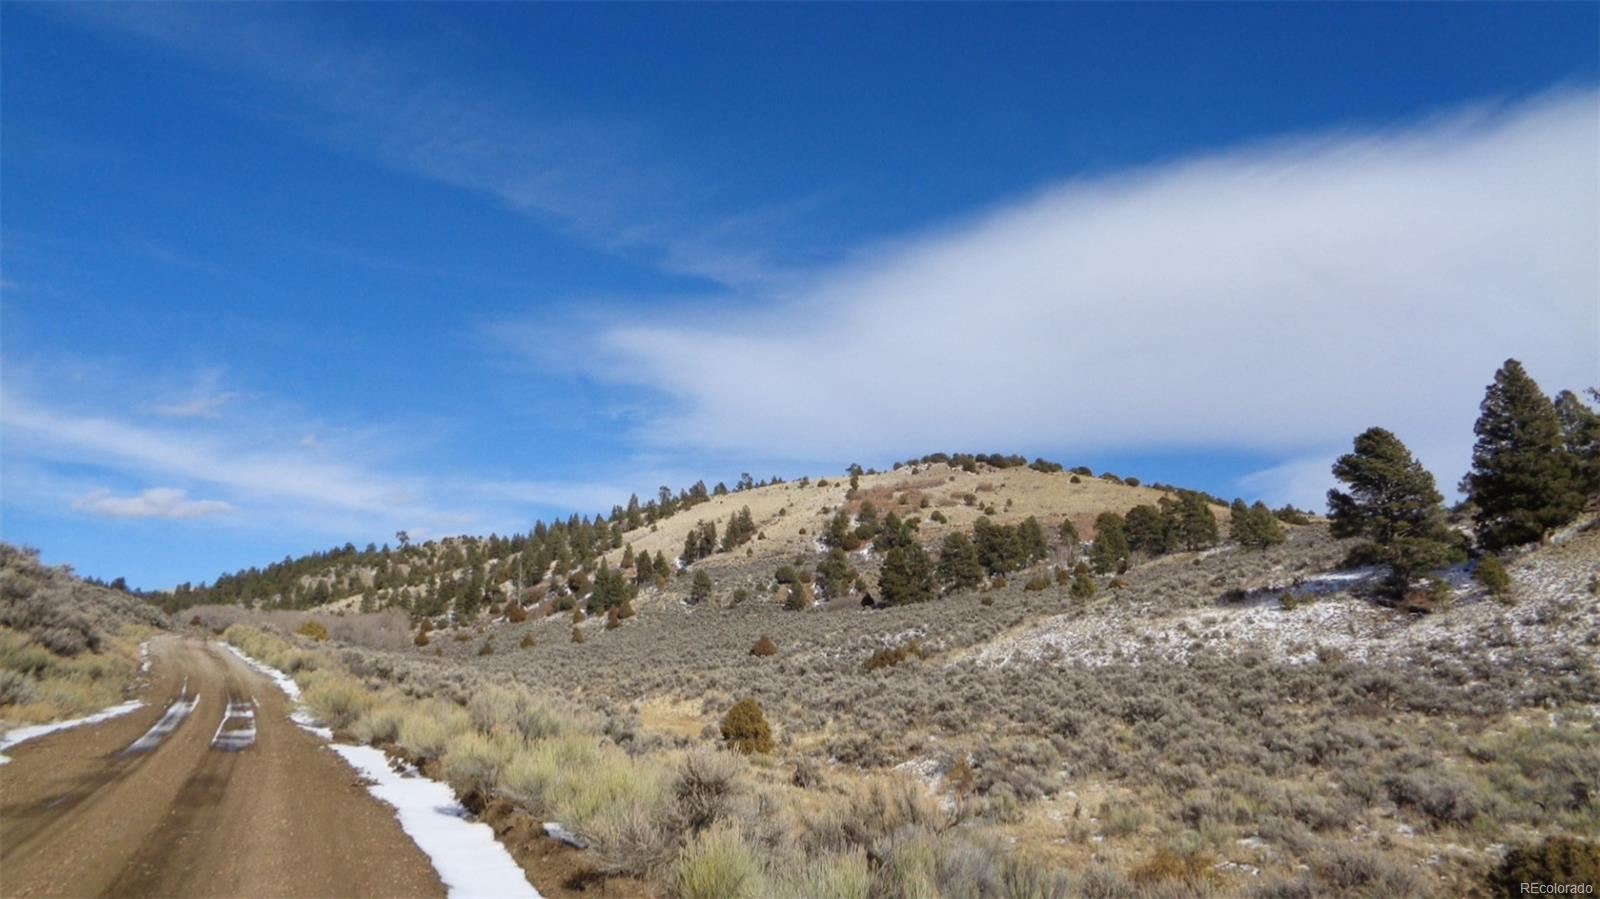 253 Griffiths Drive, Fort Garland, CO 81133 - Fort Garland, CO real estate listing